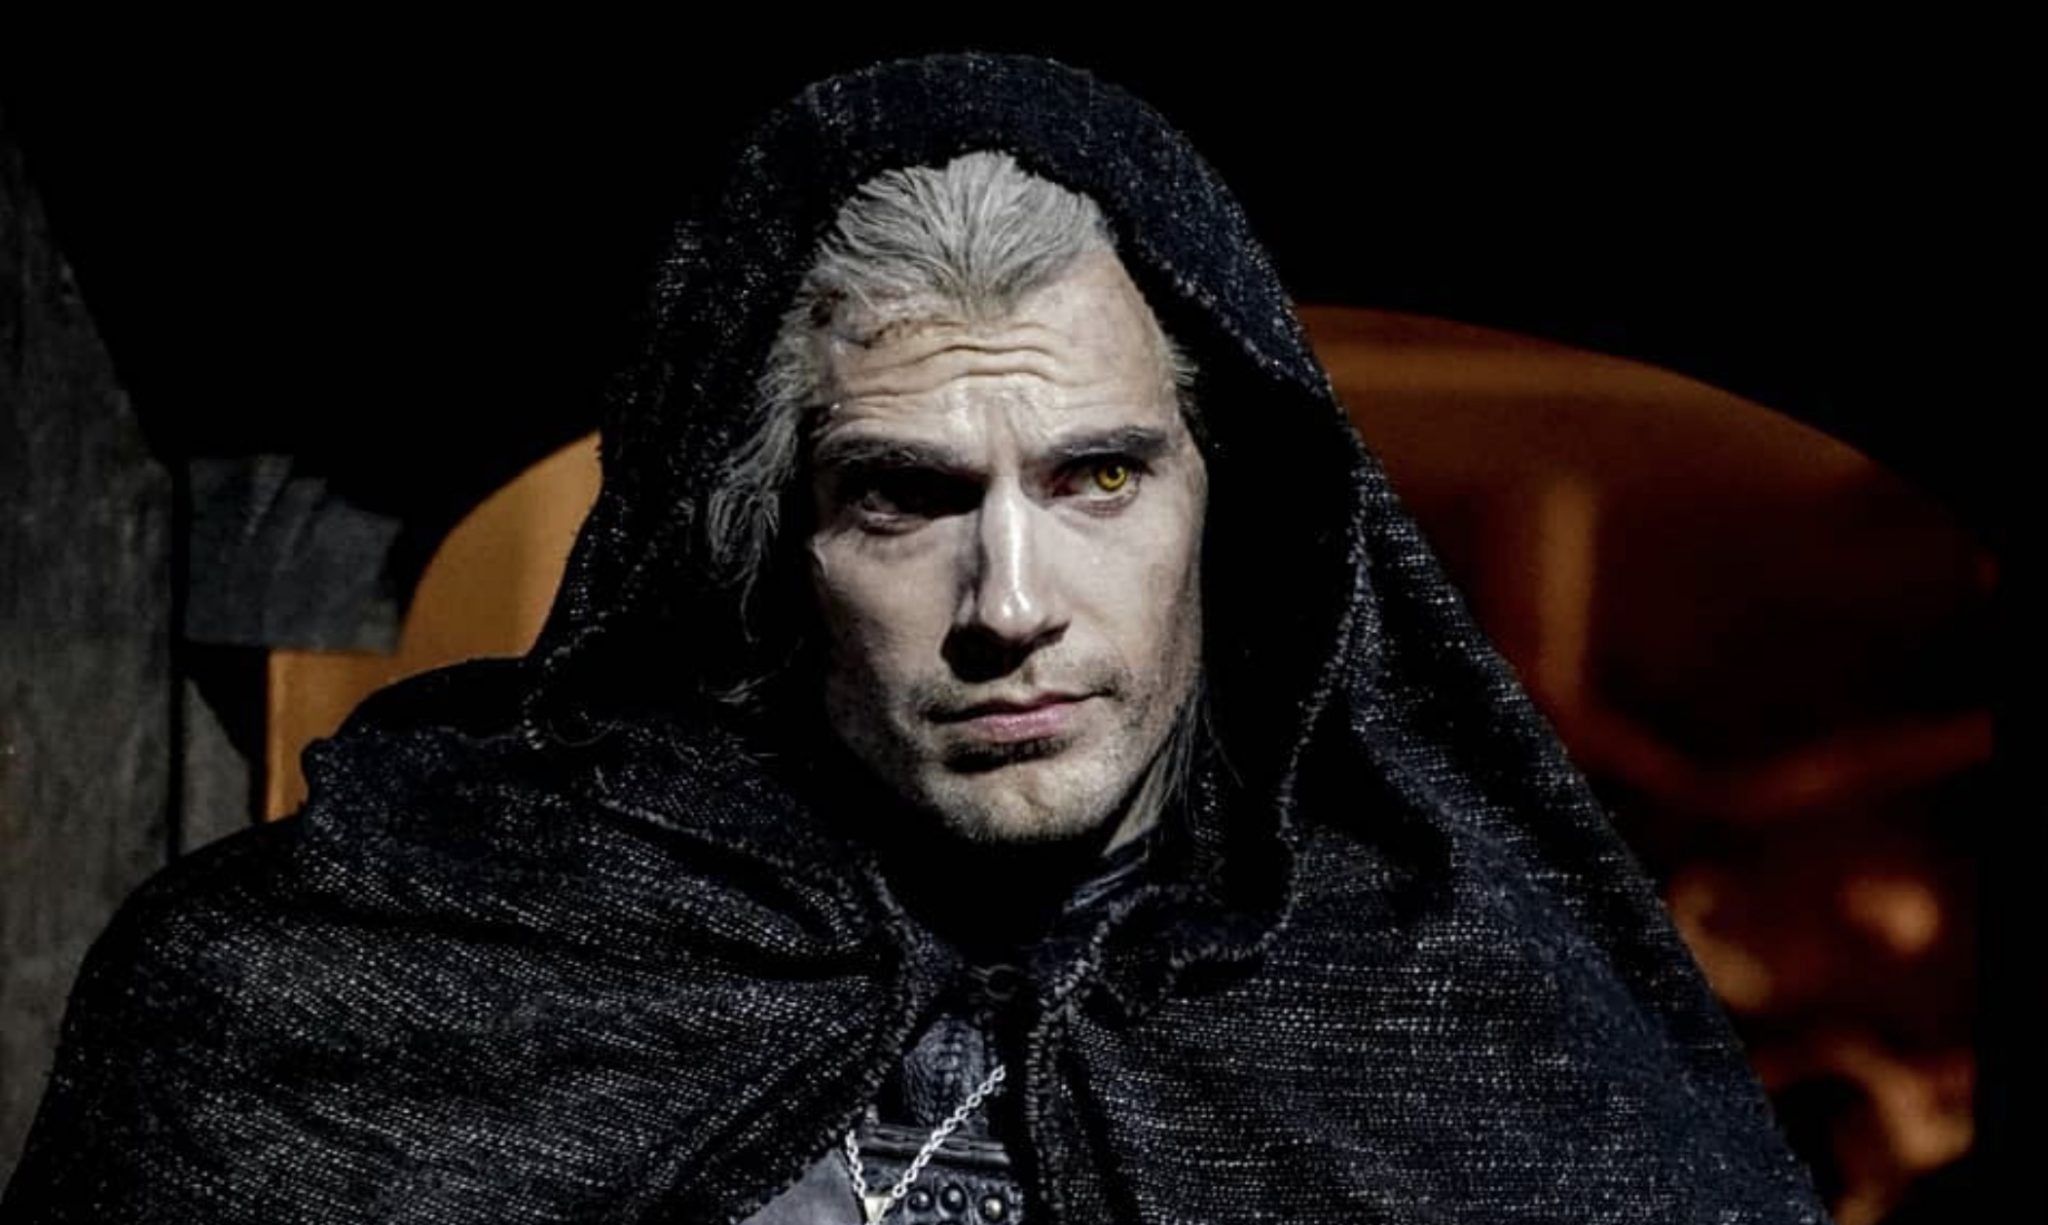 The Witcher, Henry Cavill-https://www.instagram.com/p/B42Y_m4hLCx/